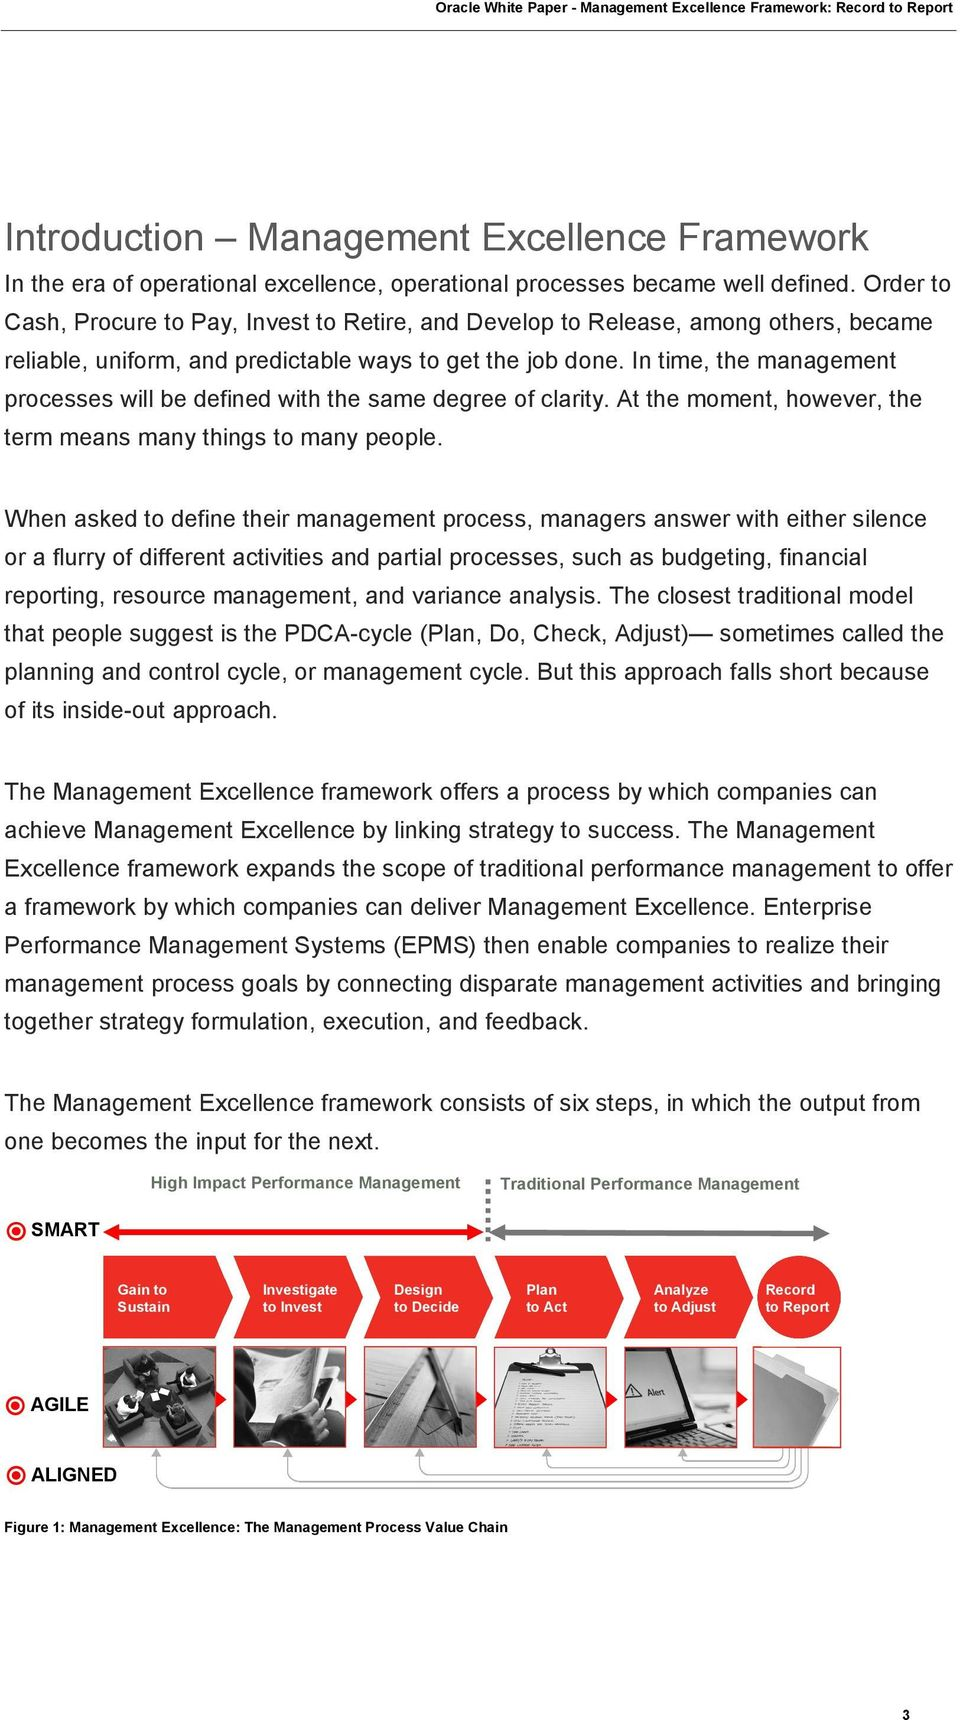 In time, the management processes will be defined with the same degree of clarity. At the moment, however, the term means many things to many people.